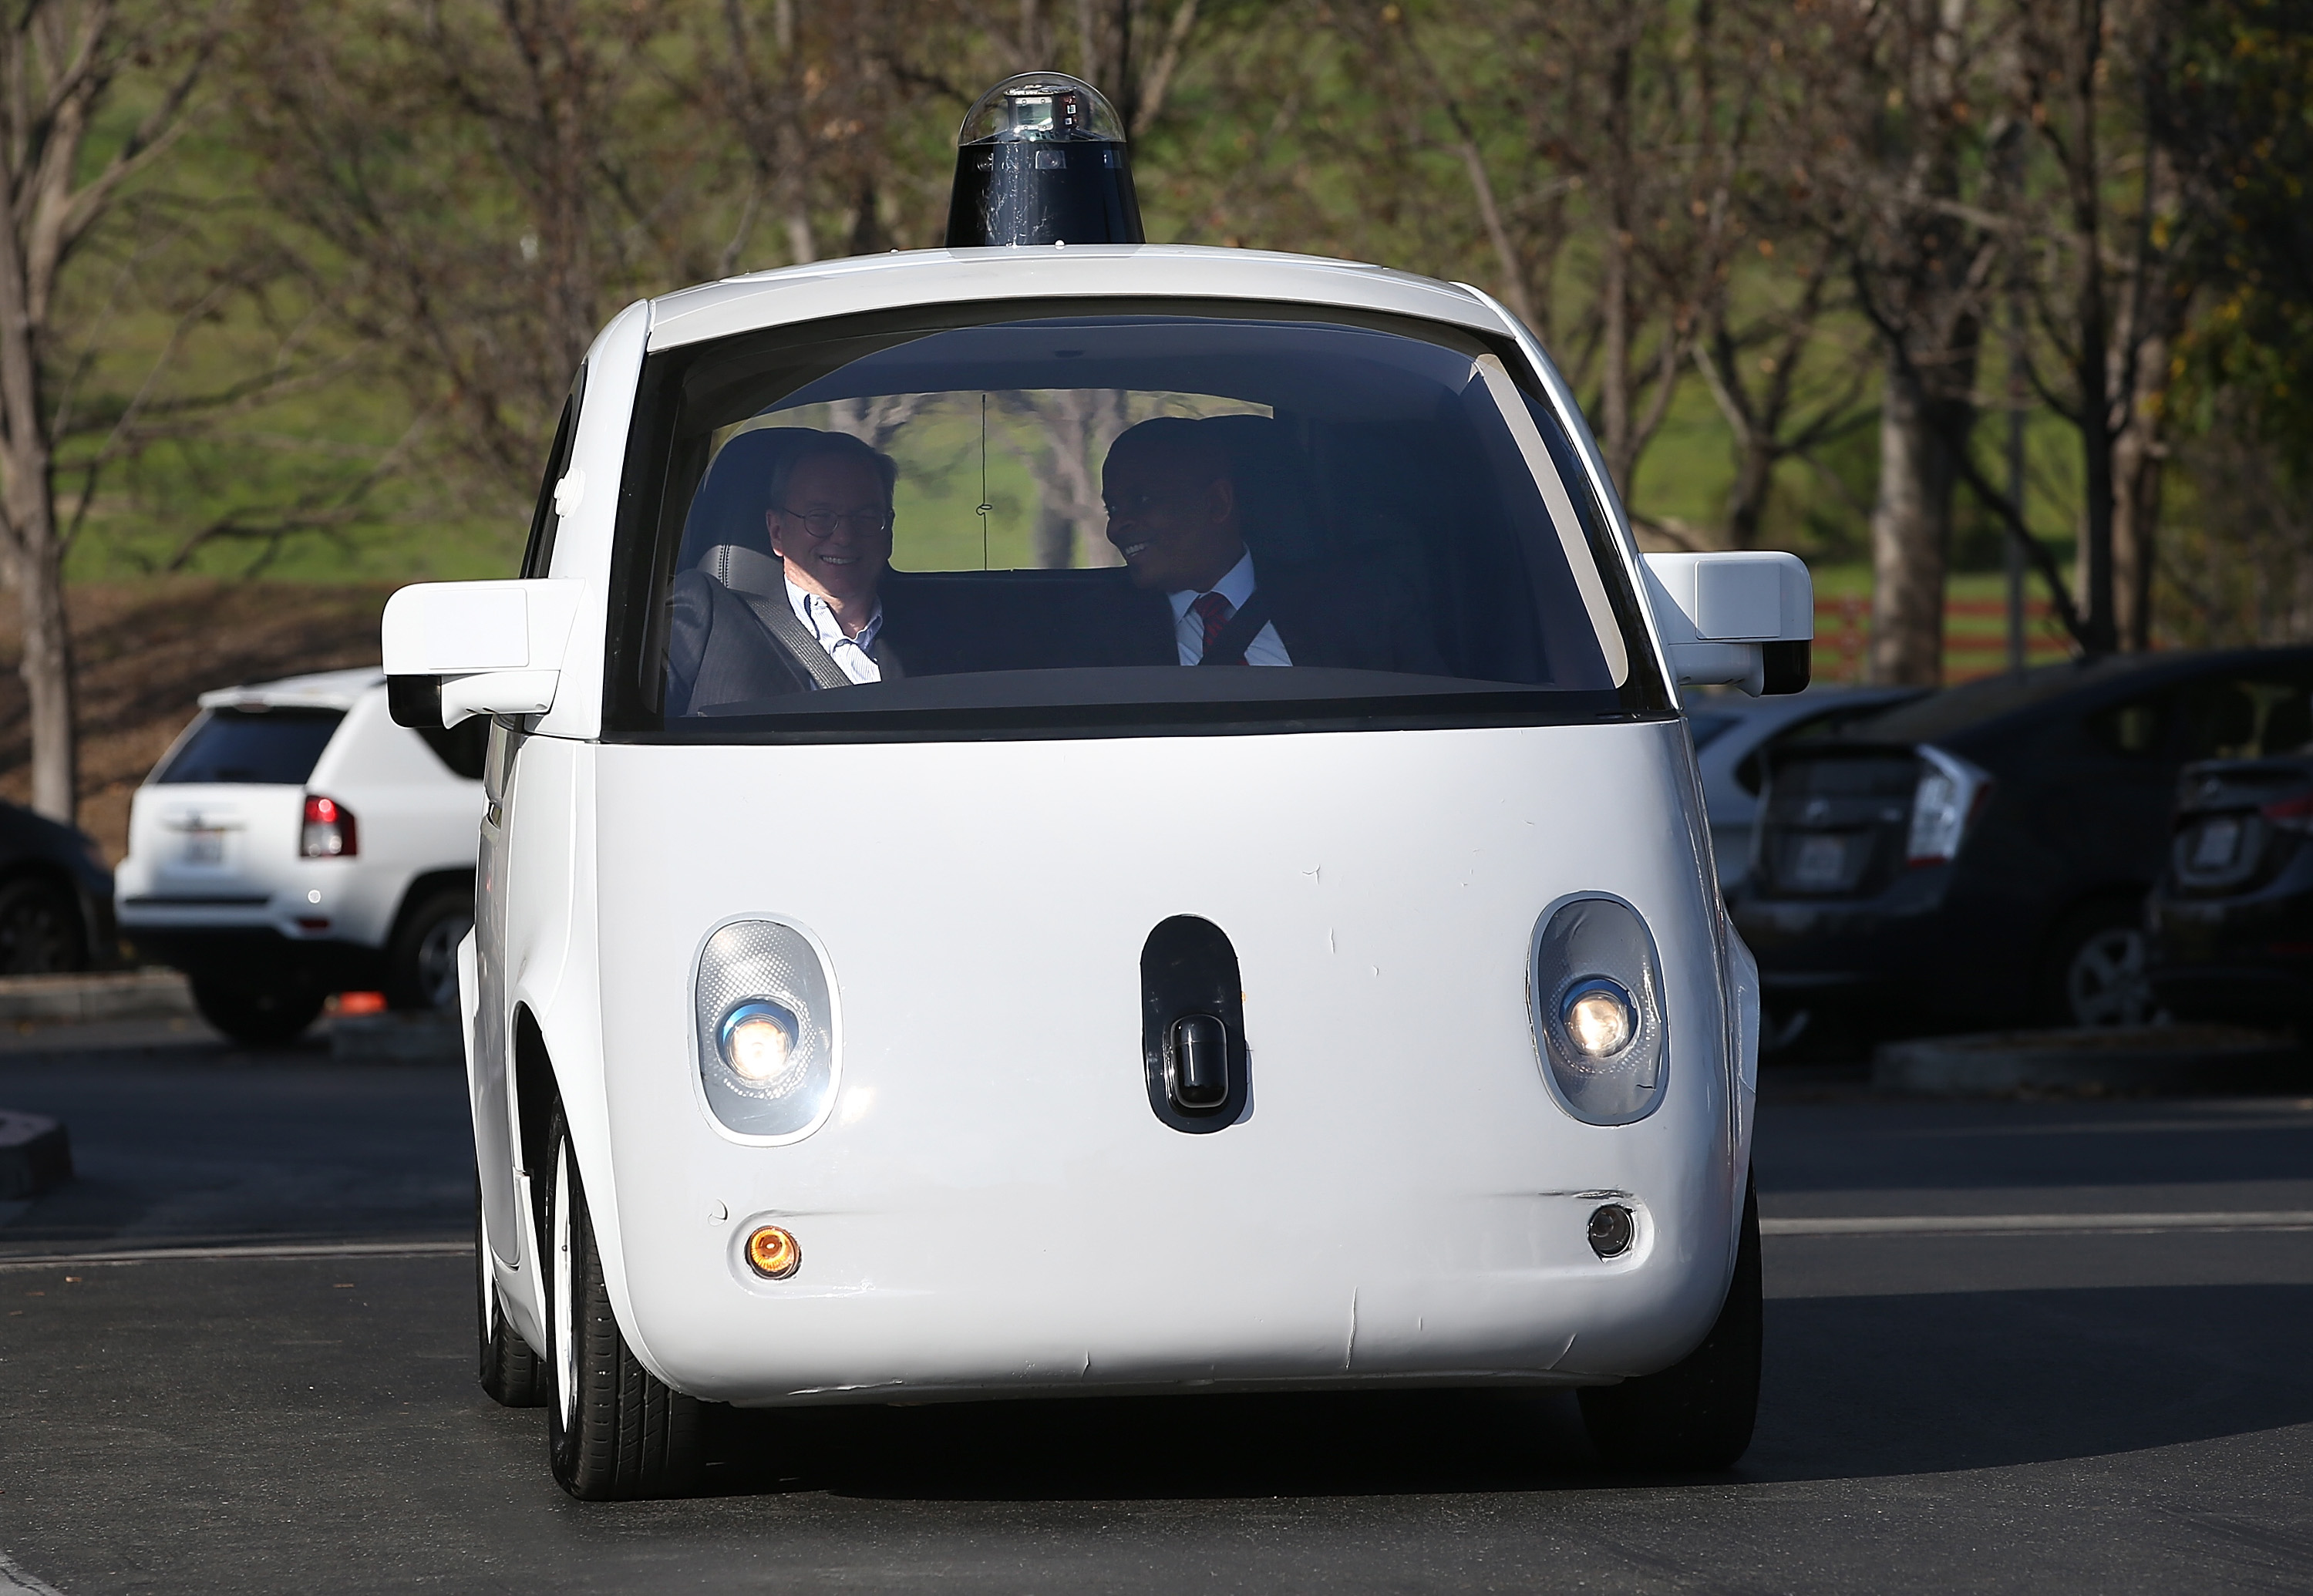 U.S. Transportation Secretary Anthony Foxx (R) and Google Chairman Eric Schmidt (L) ride in a Google self-driving car at the Google headquarters on February 2, 2015 in Mountain View, California.